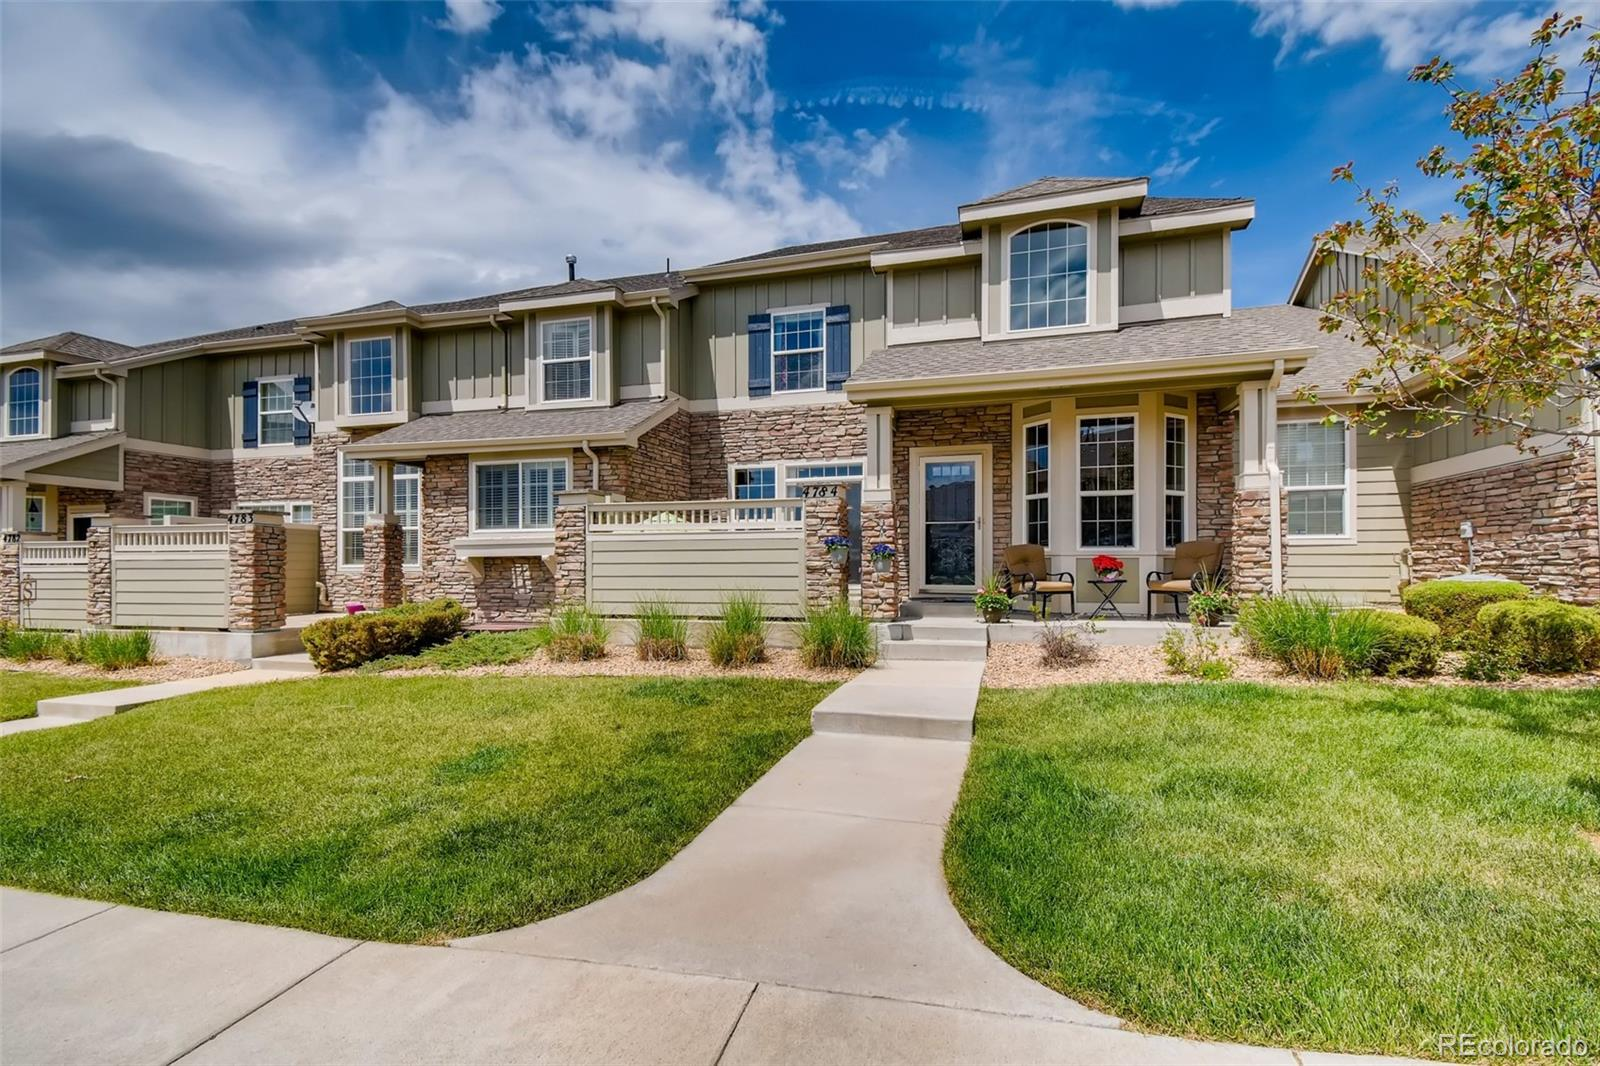 4784 Raven Run Property Photo - Broomfield, CO real estate listing